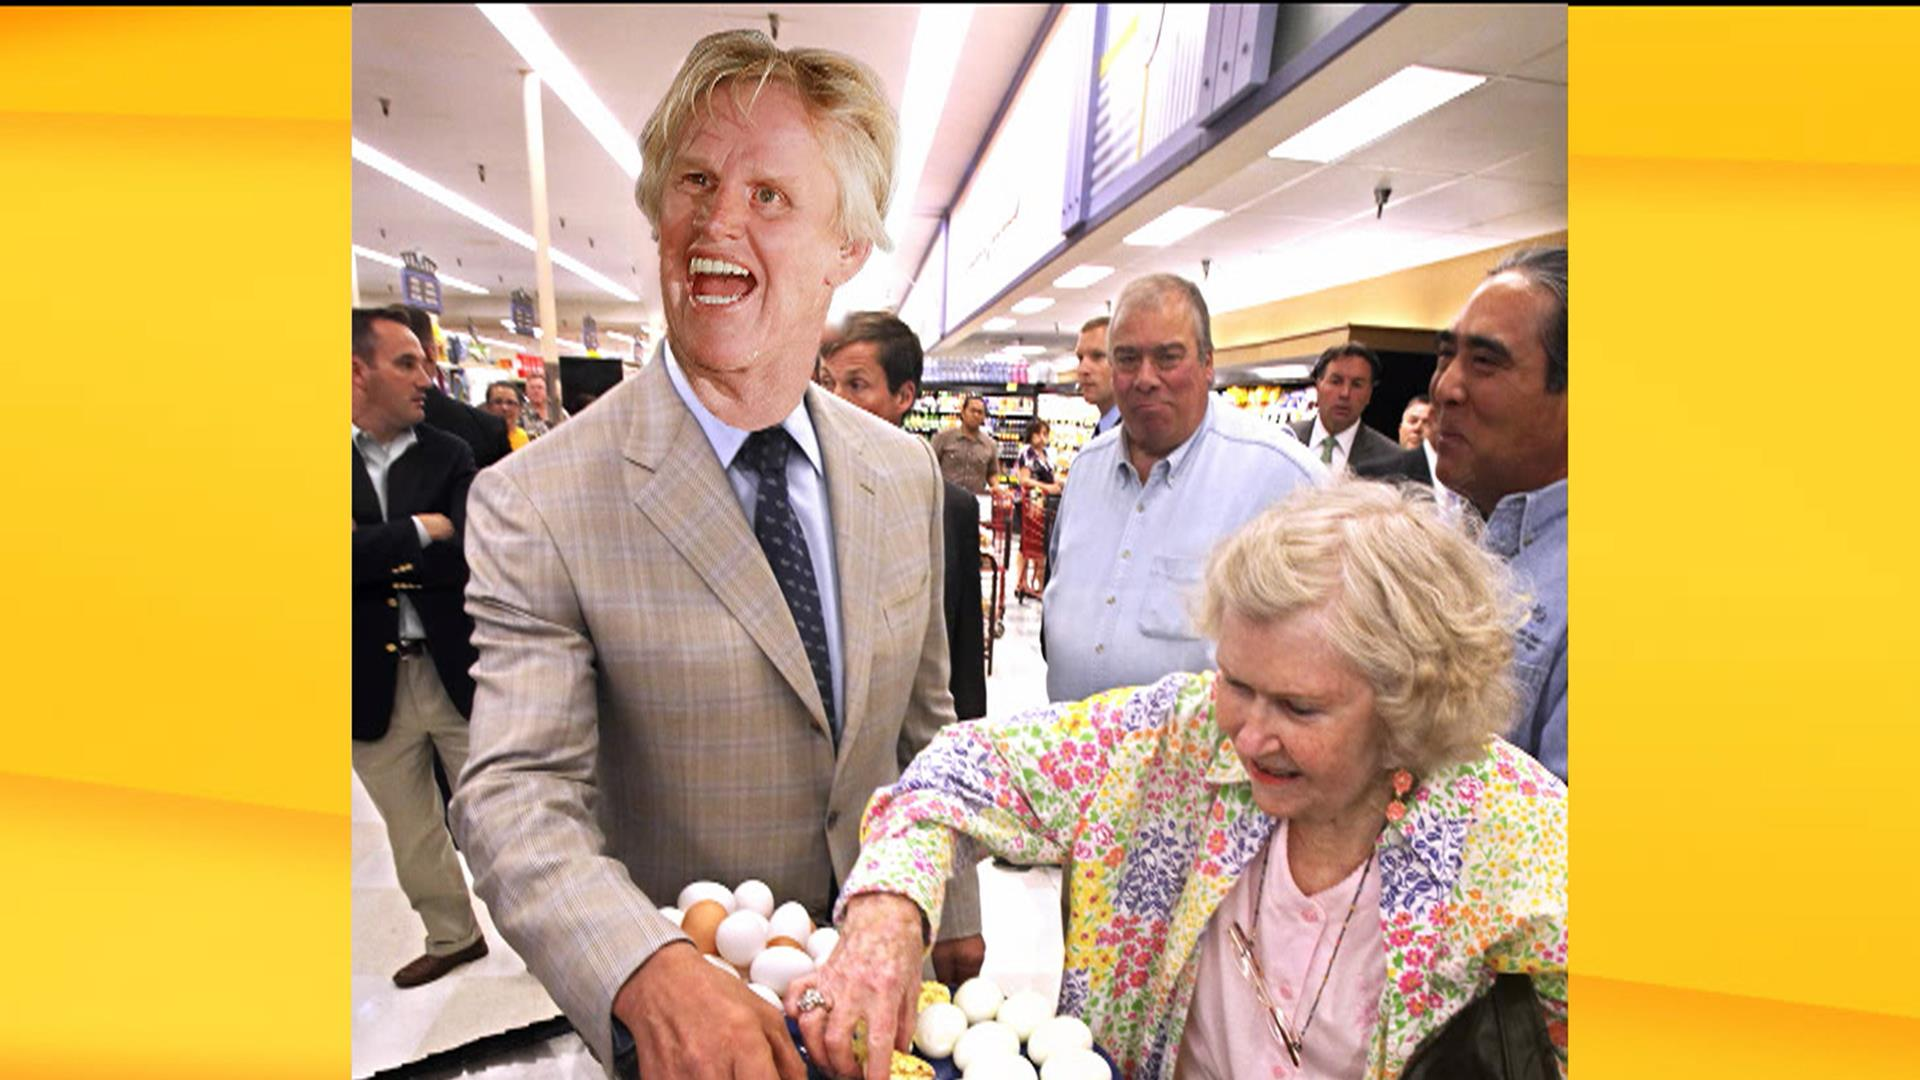 Gary Busey, world record holder? See Willie Geists predictions for next week